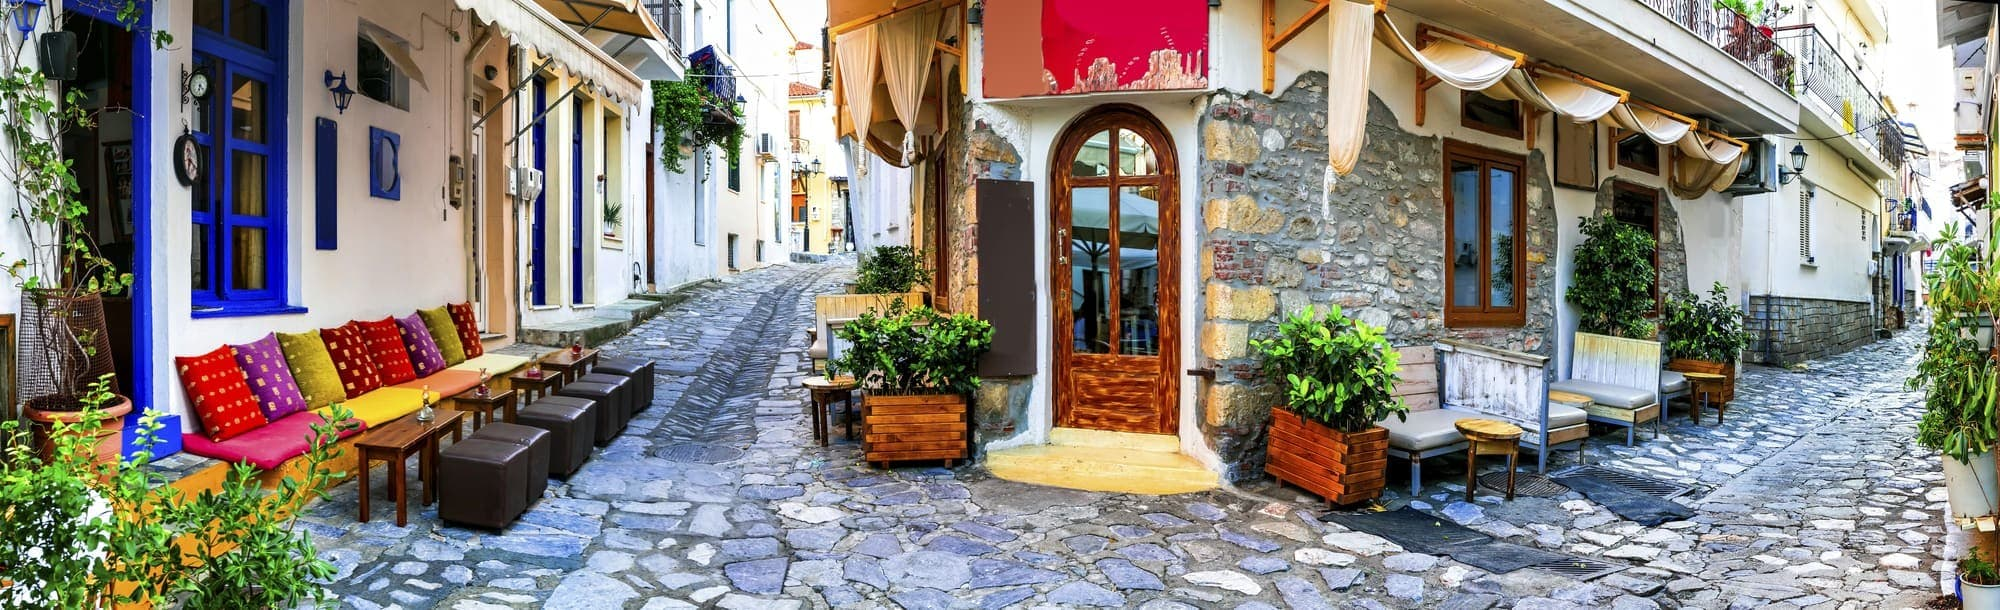 Traditional colorful Greece - charming old streets of Skiathos t